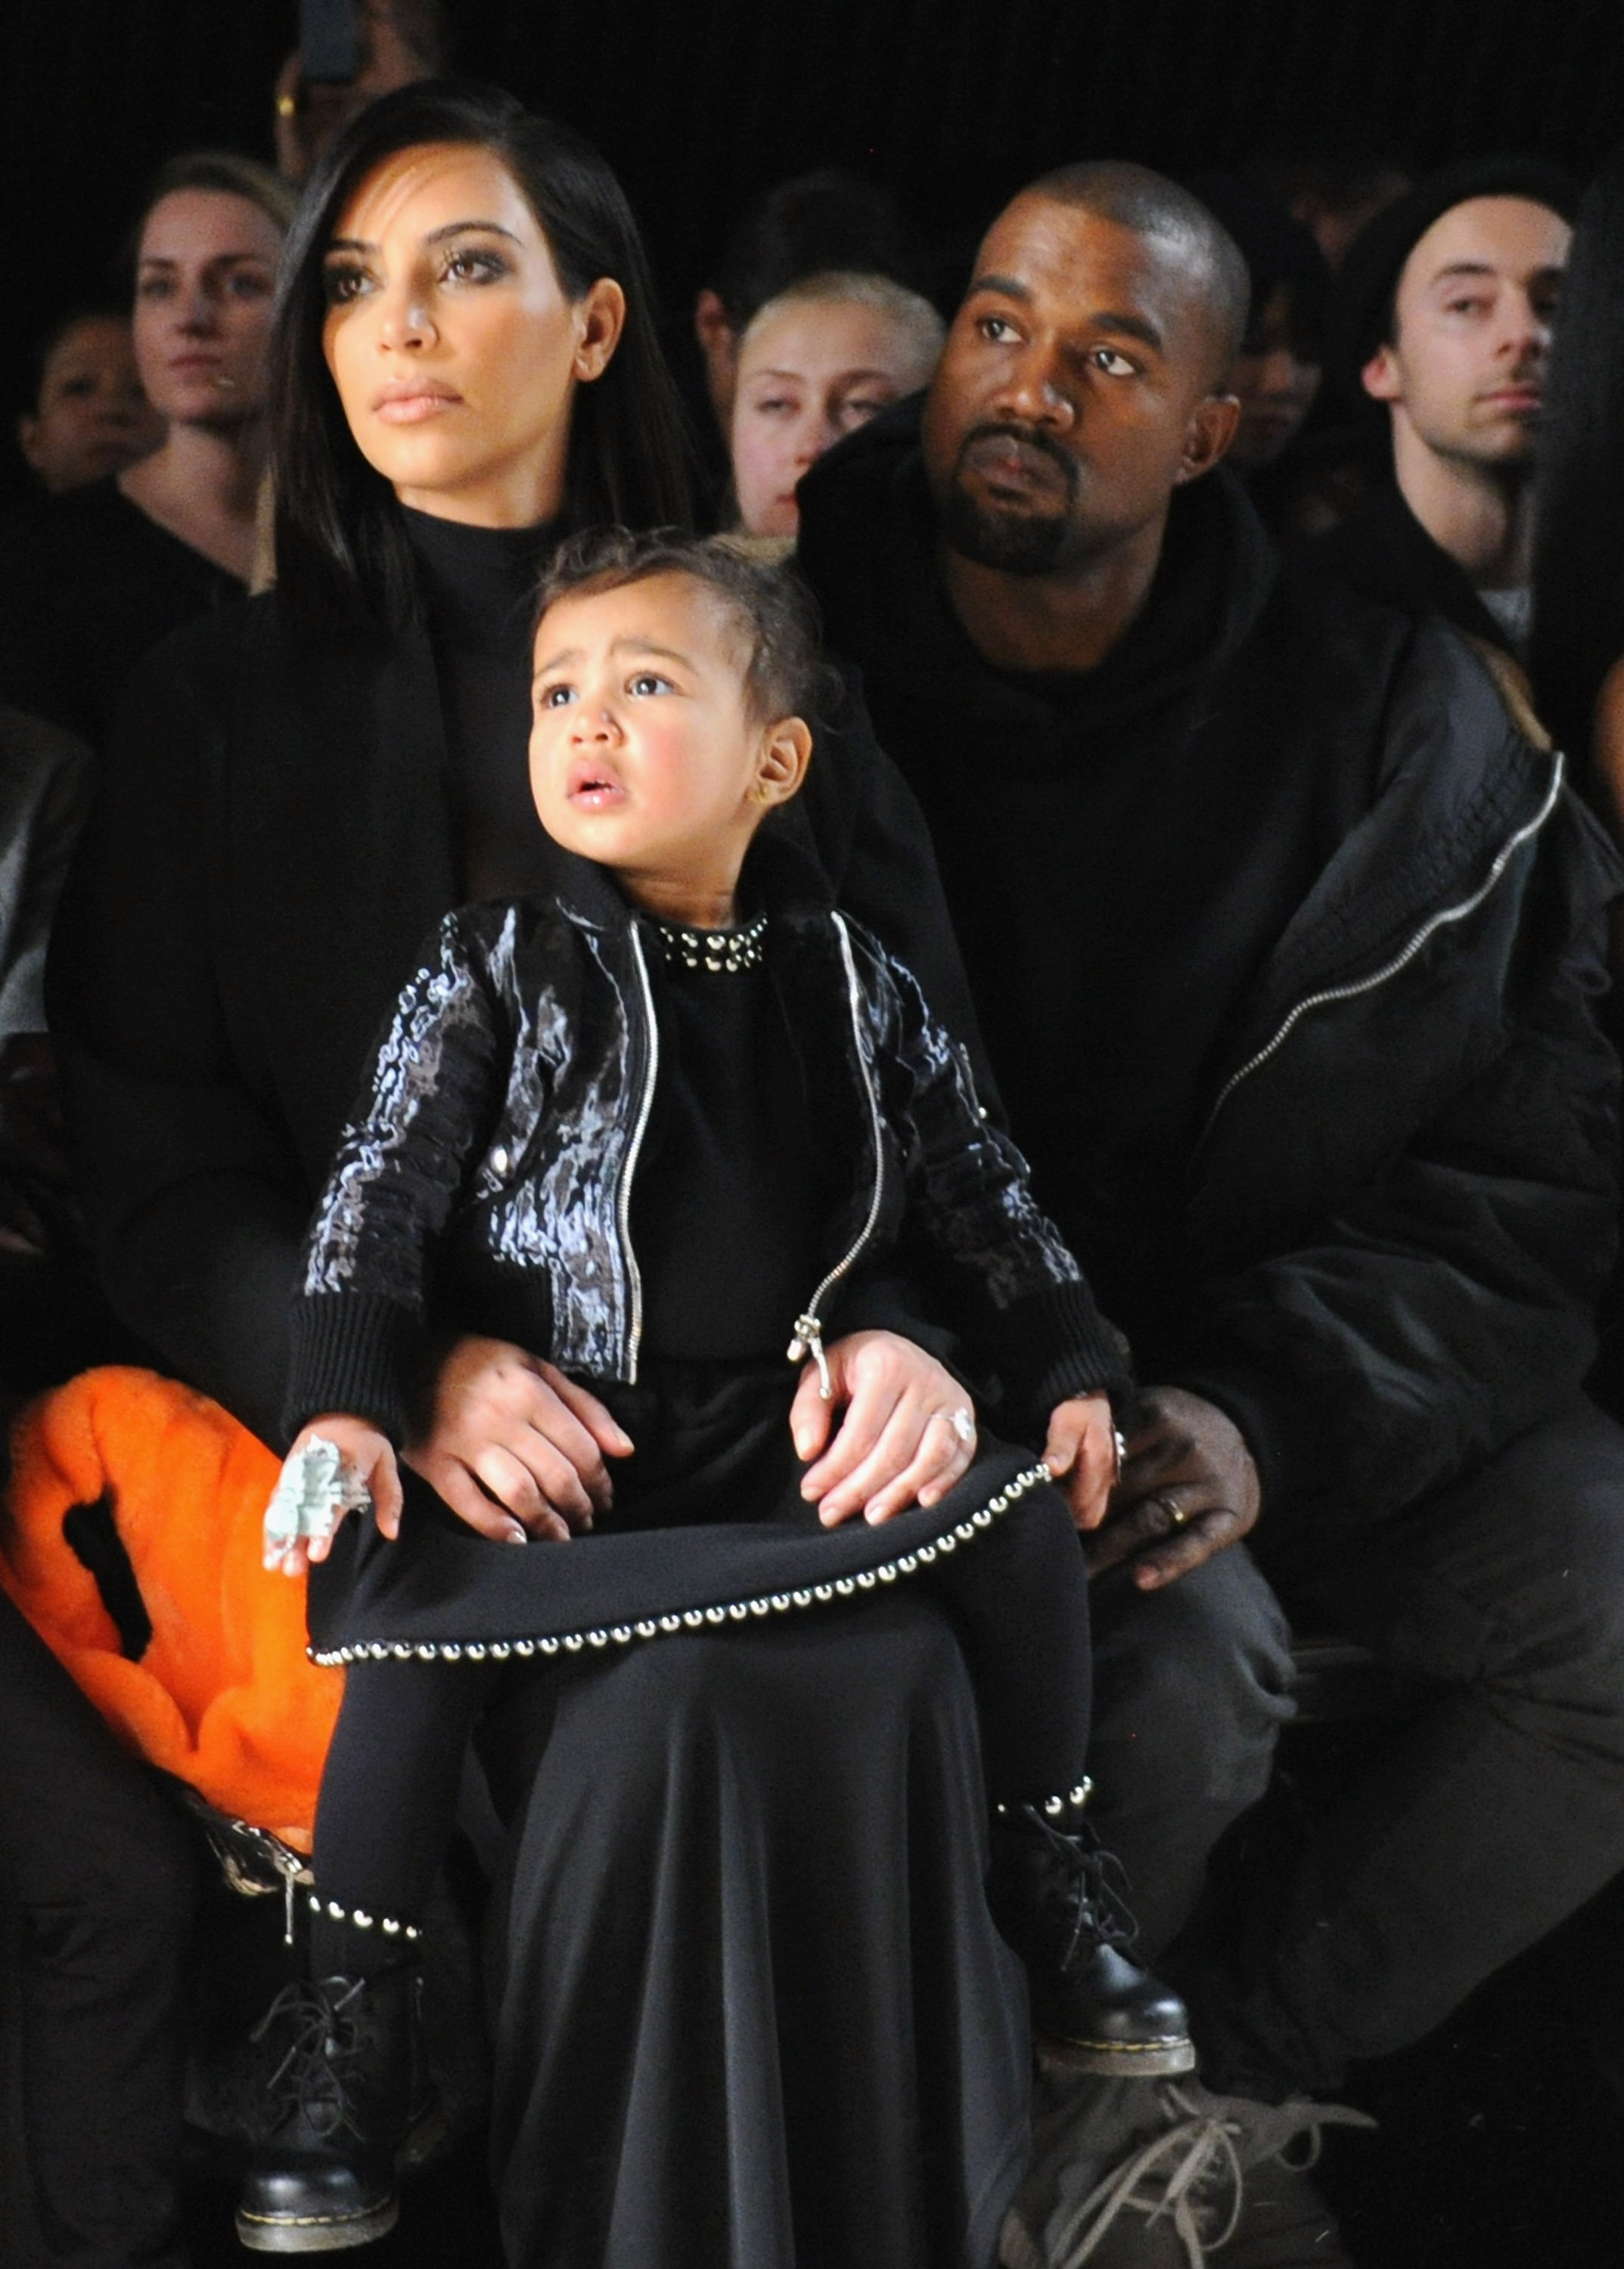 Kim Kardashian, North West and Kanye West attend the Alexander Wang Fashion Show during Mercedes-Benz Fashion Week Fall 2015 at Pier 94 on February 14, 2015 in New York City | Photo: Getty Images